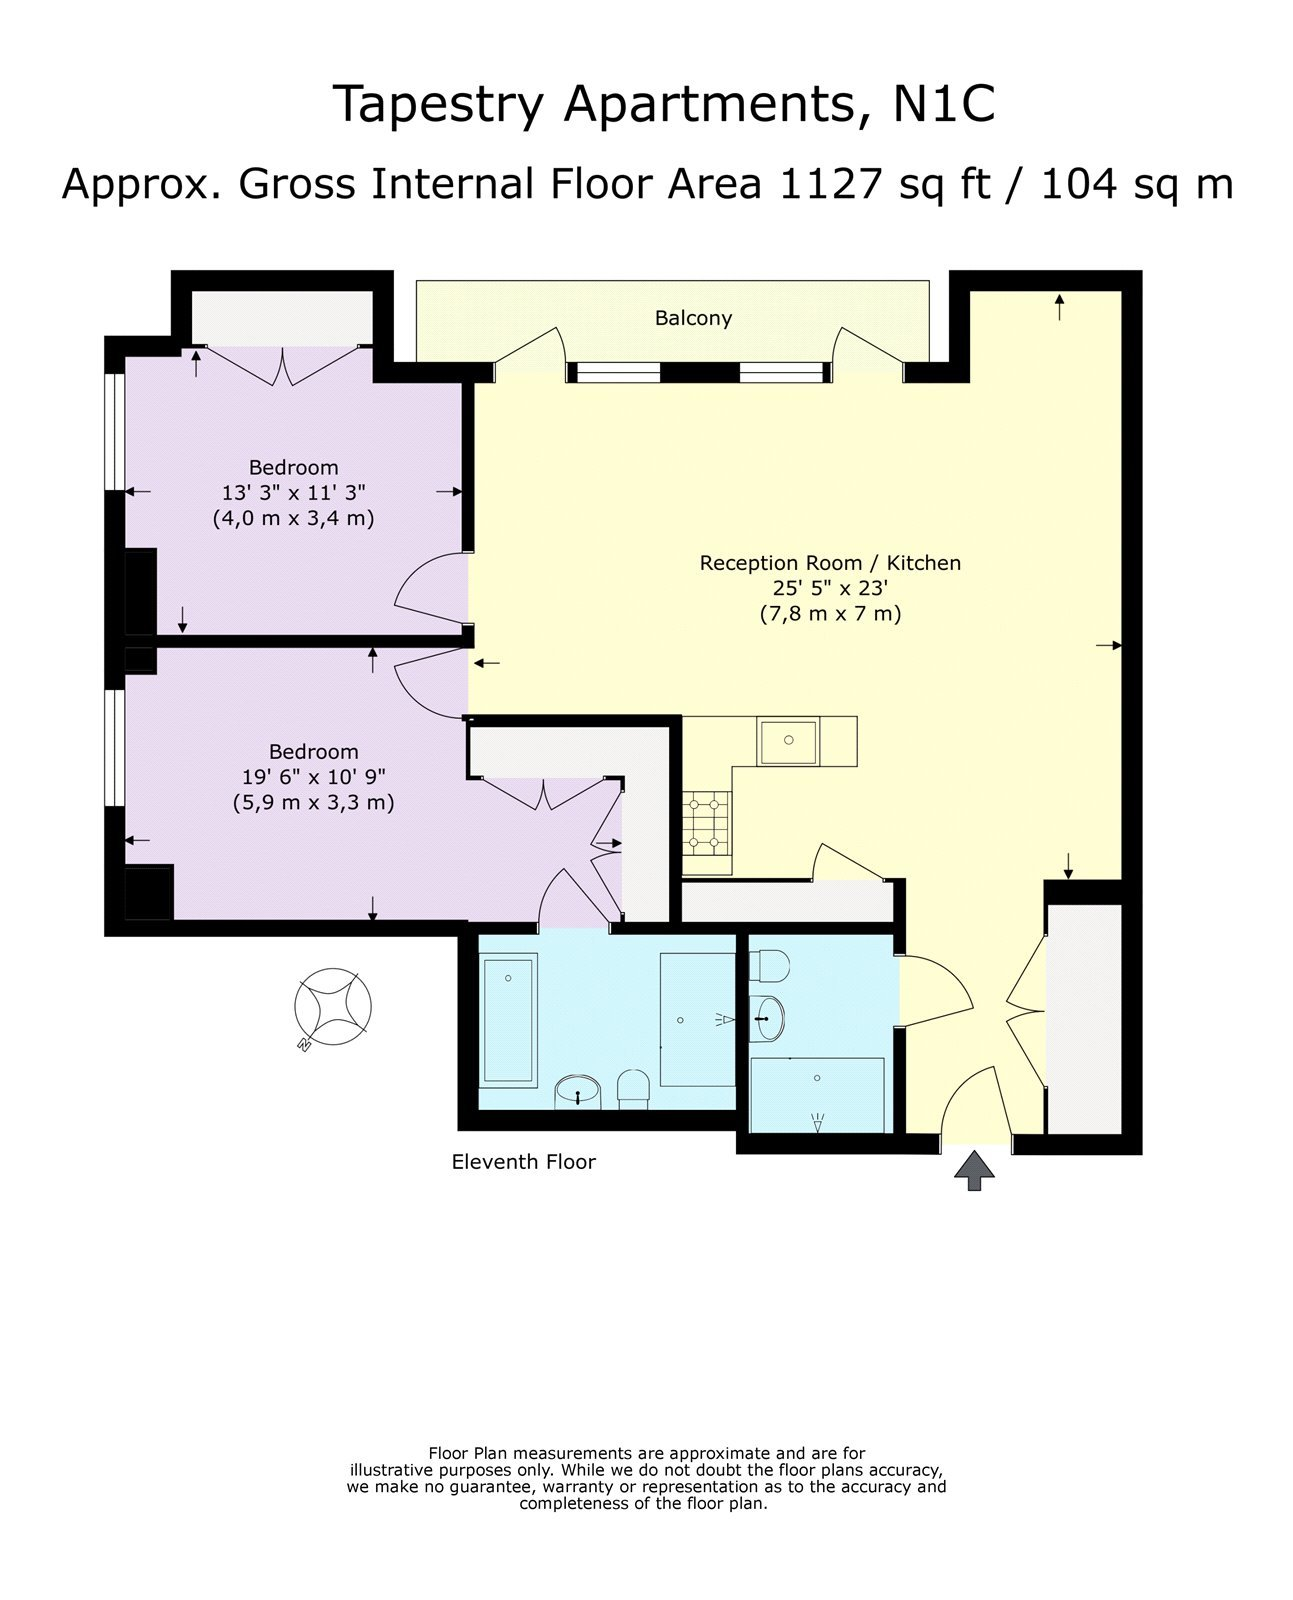 2 Bedroom Apartment For Sale In Tapestry Apartments, 1